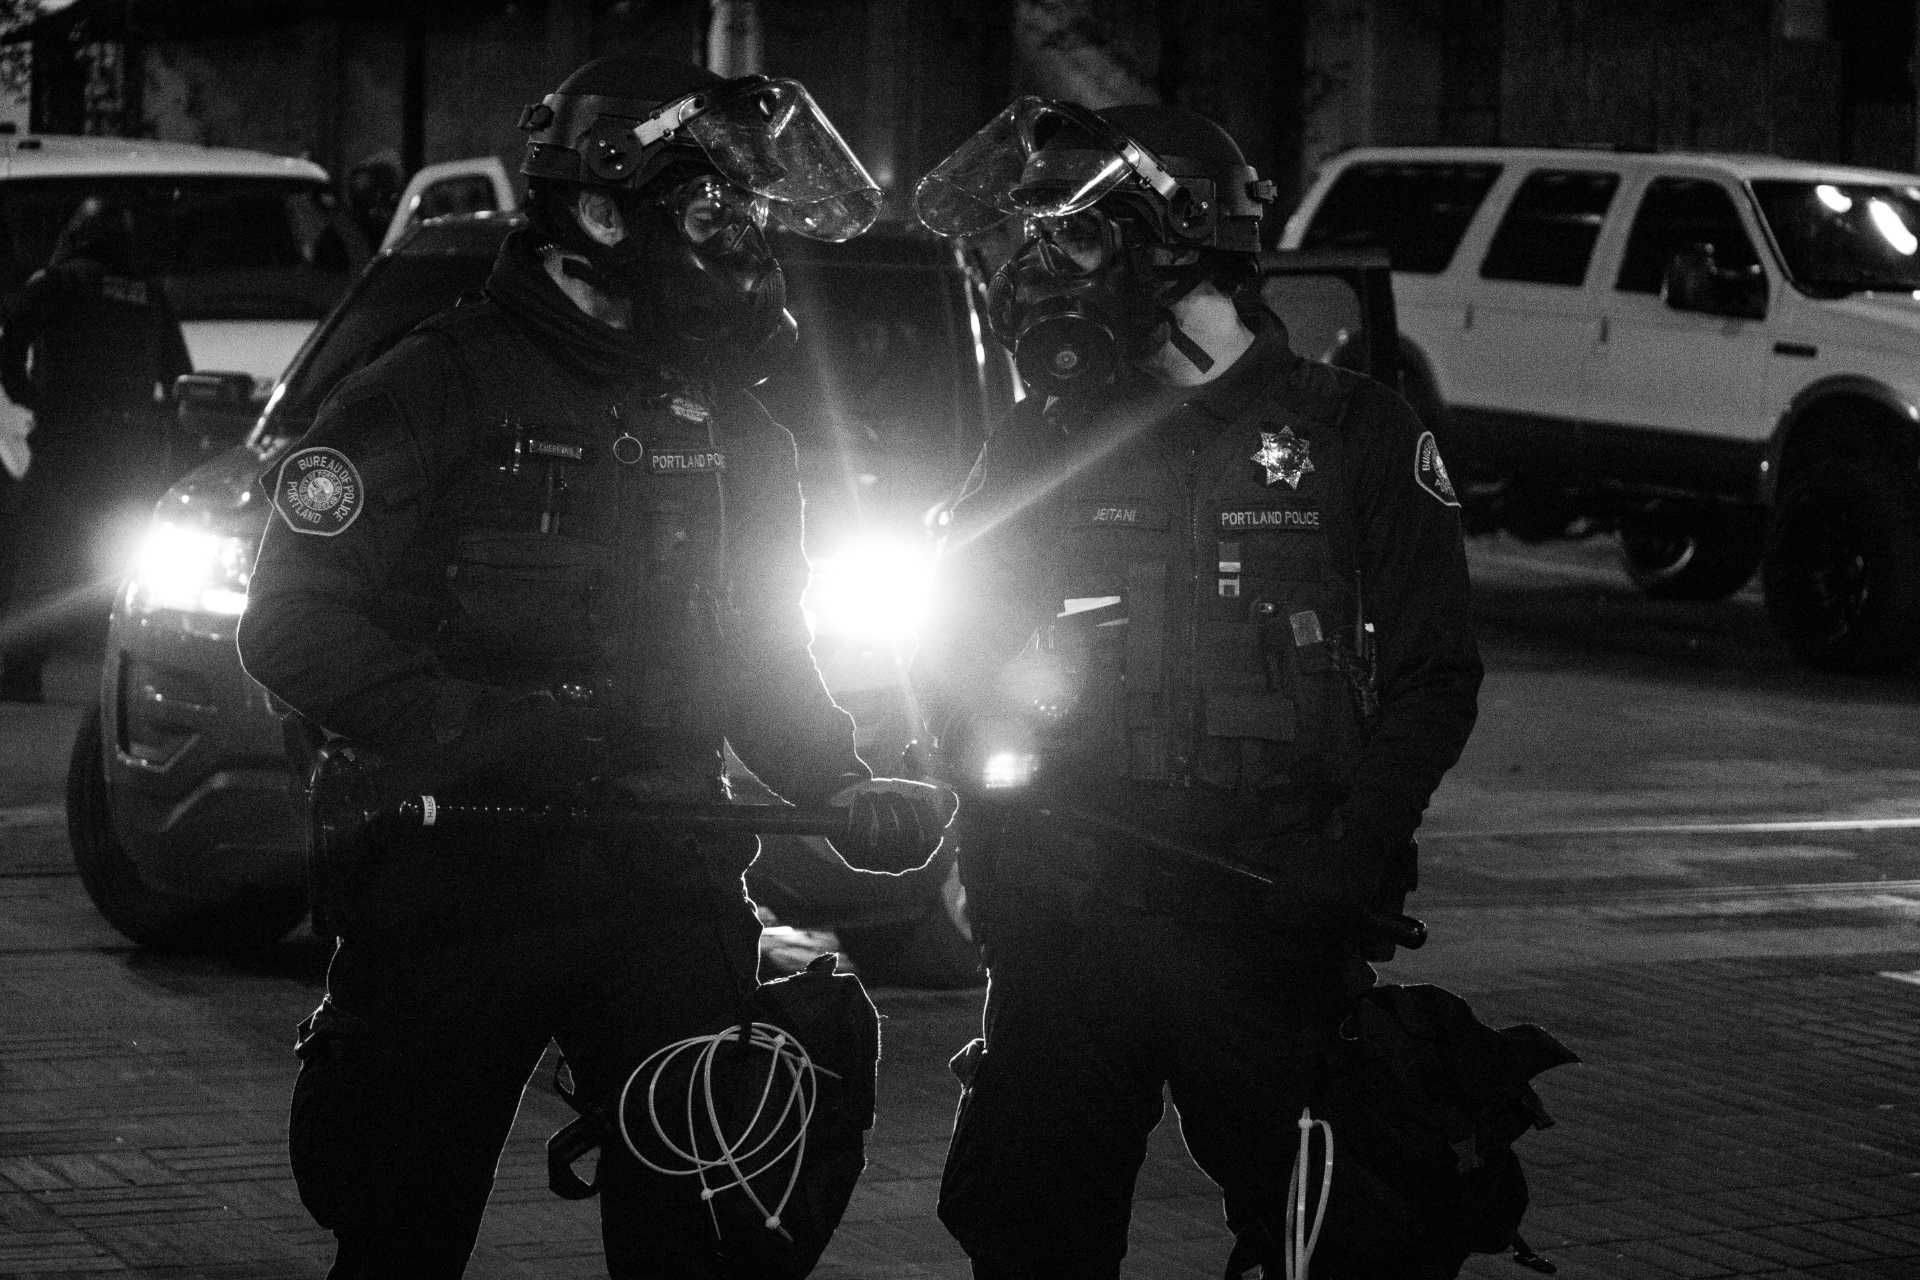 Two police officers in riot gear. Photo courtesy of Tito Texidor !!! on Unsplash.